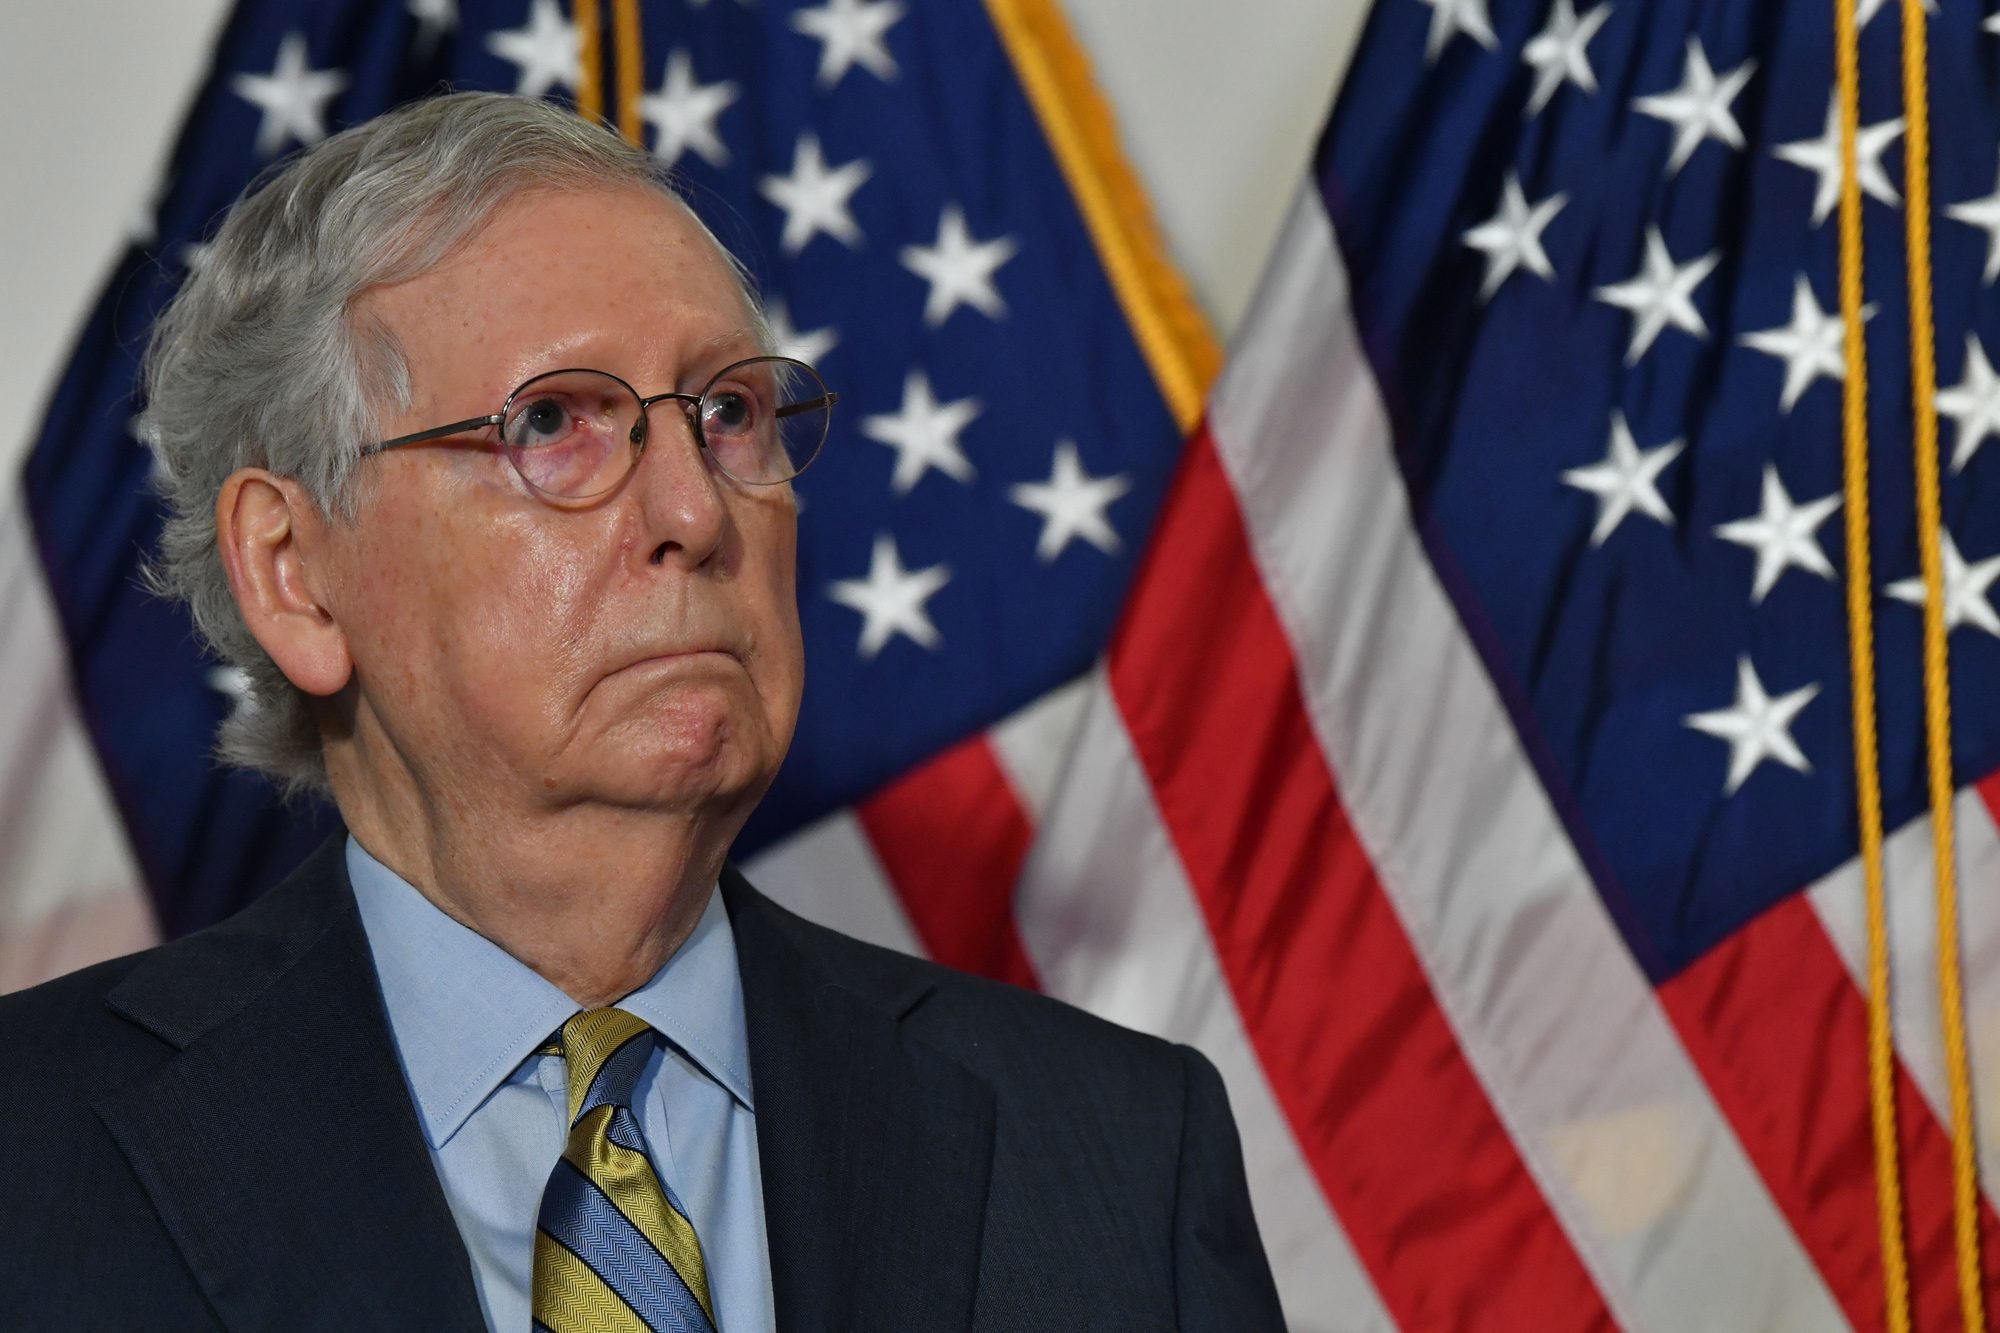 US Senate Majority Leader Mitch McConnell speaks at a press conference at the US Capitol on September 22 in Washington, DC.